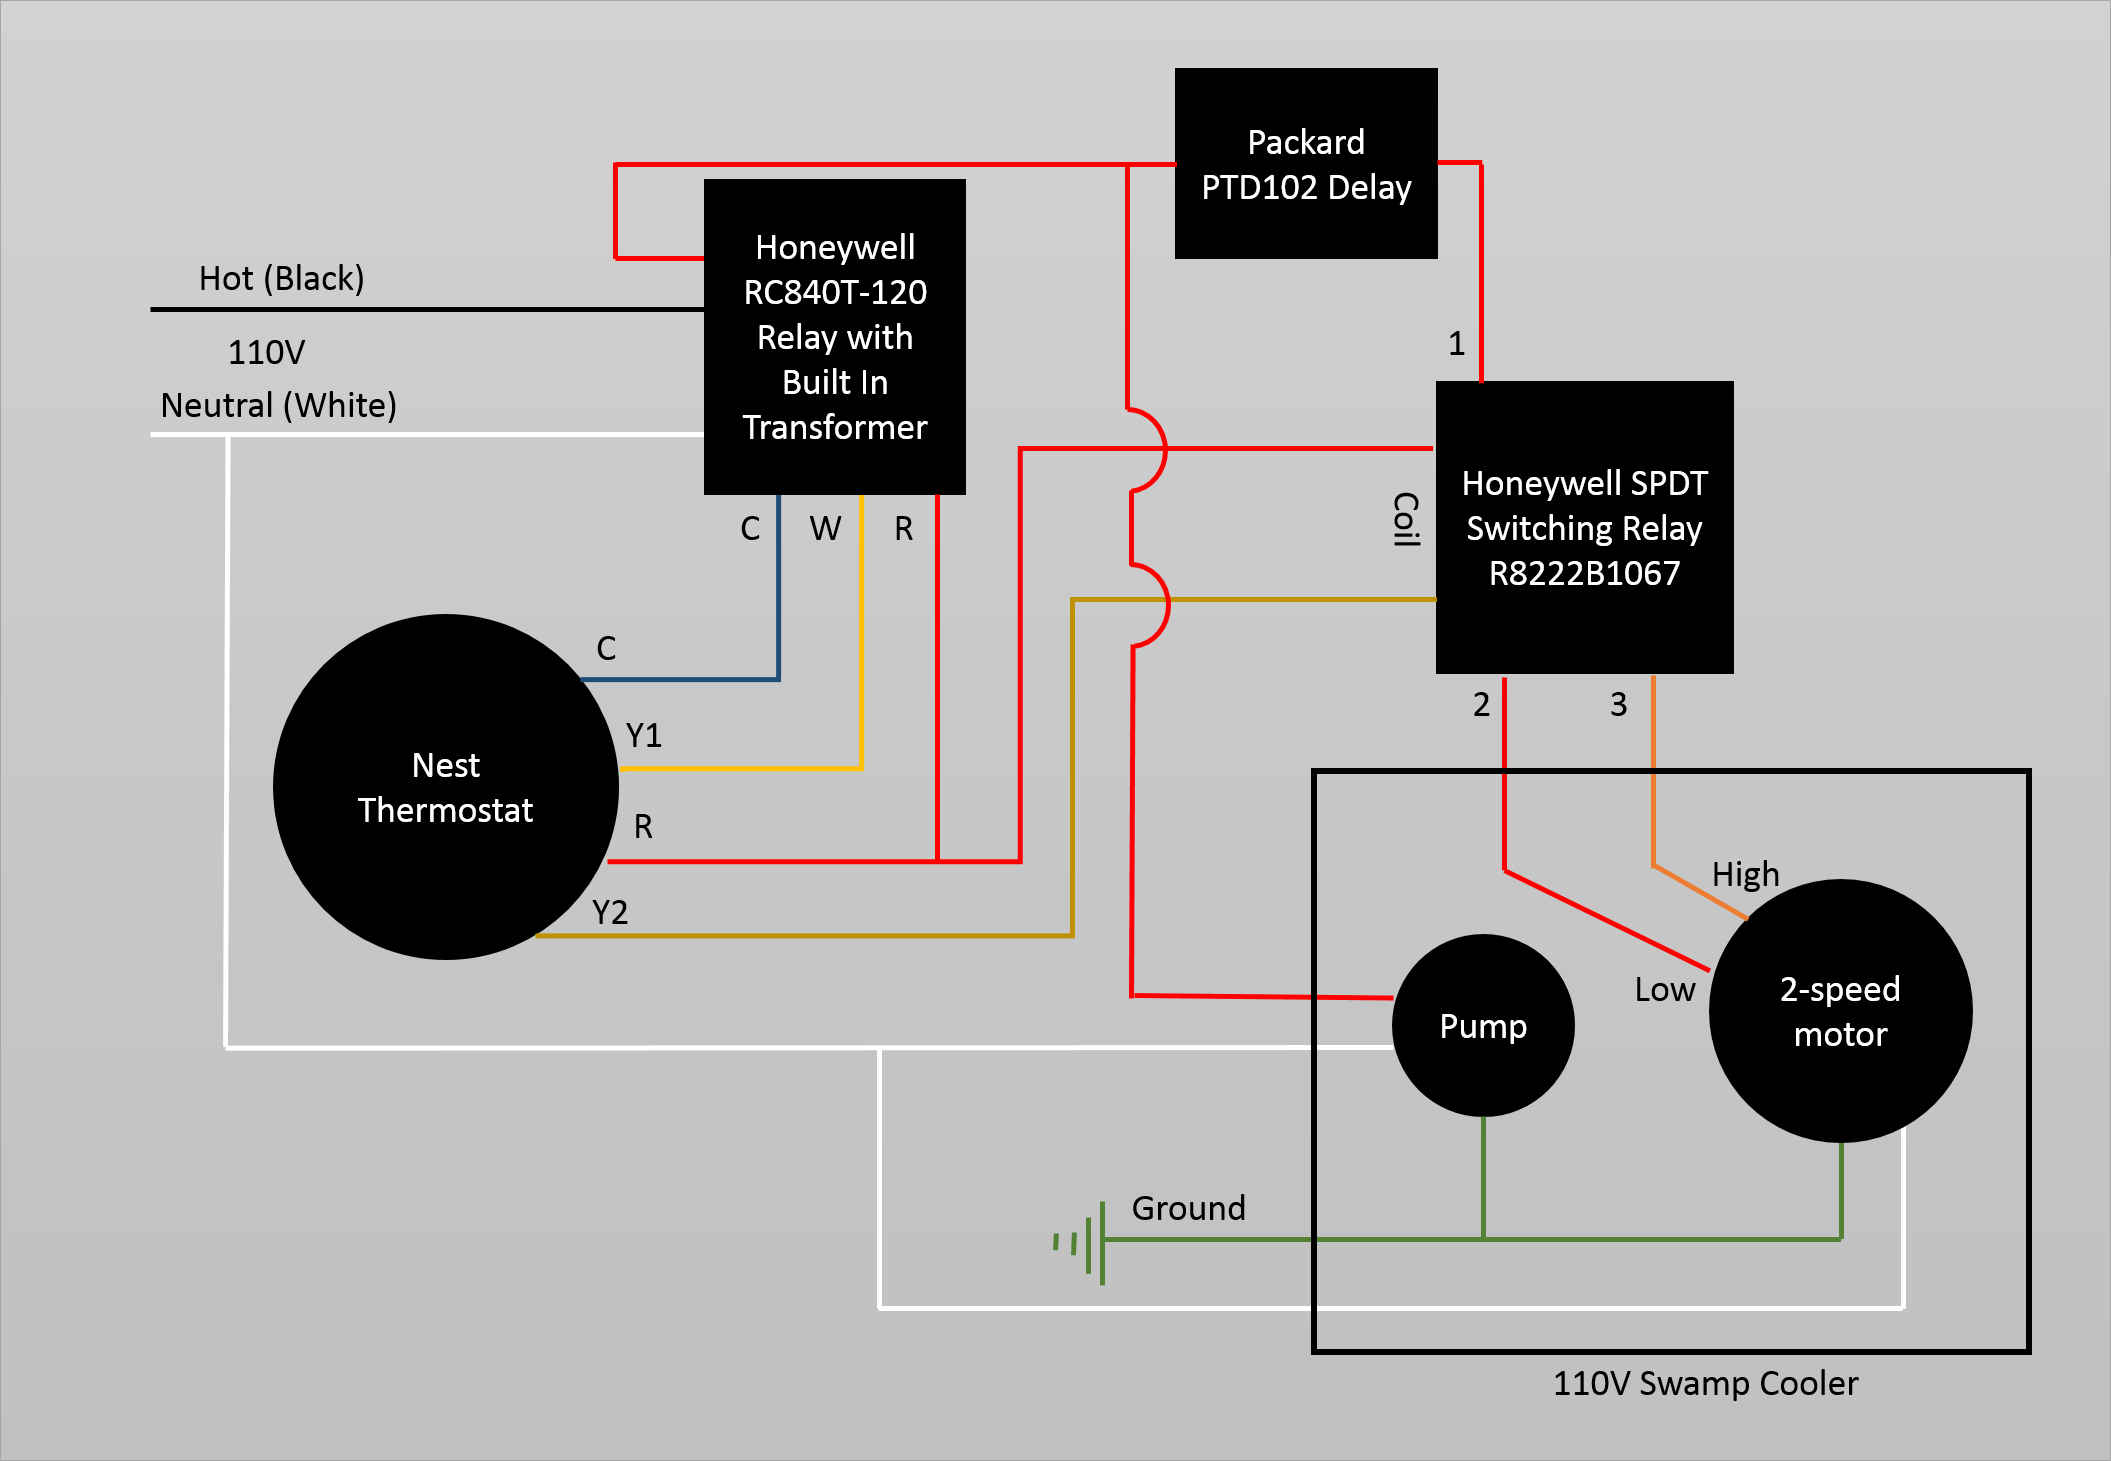 Wiring - Controlling 110V Swamp Cooler Using Nest Thermostat - Home - Nest Humidifier Wiring Diagram No C Wire